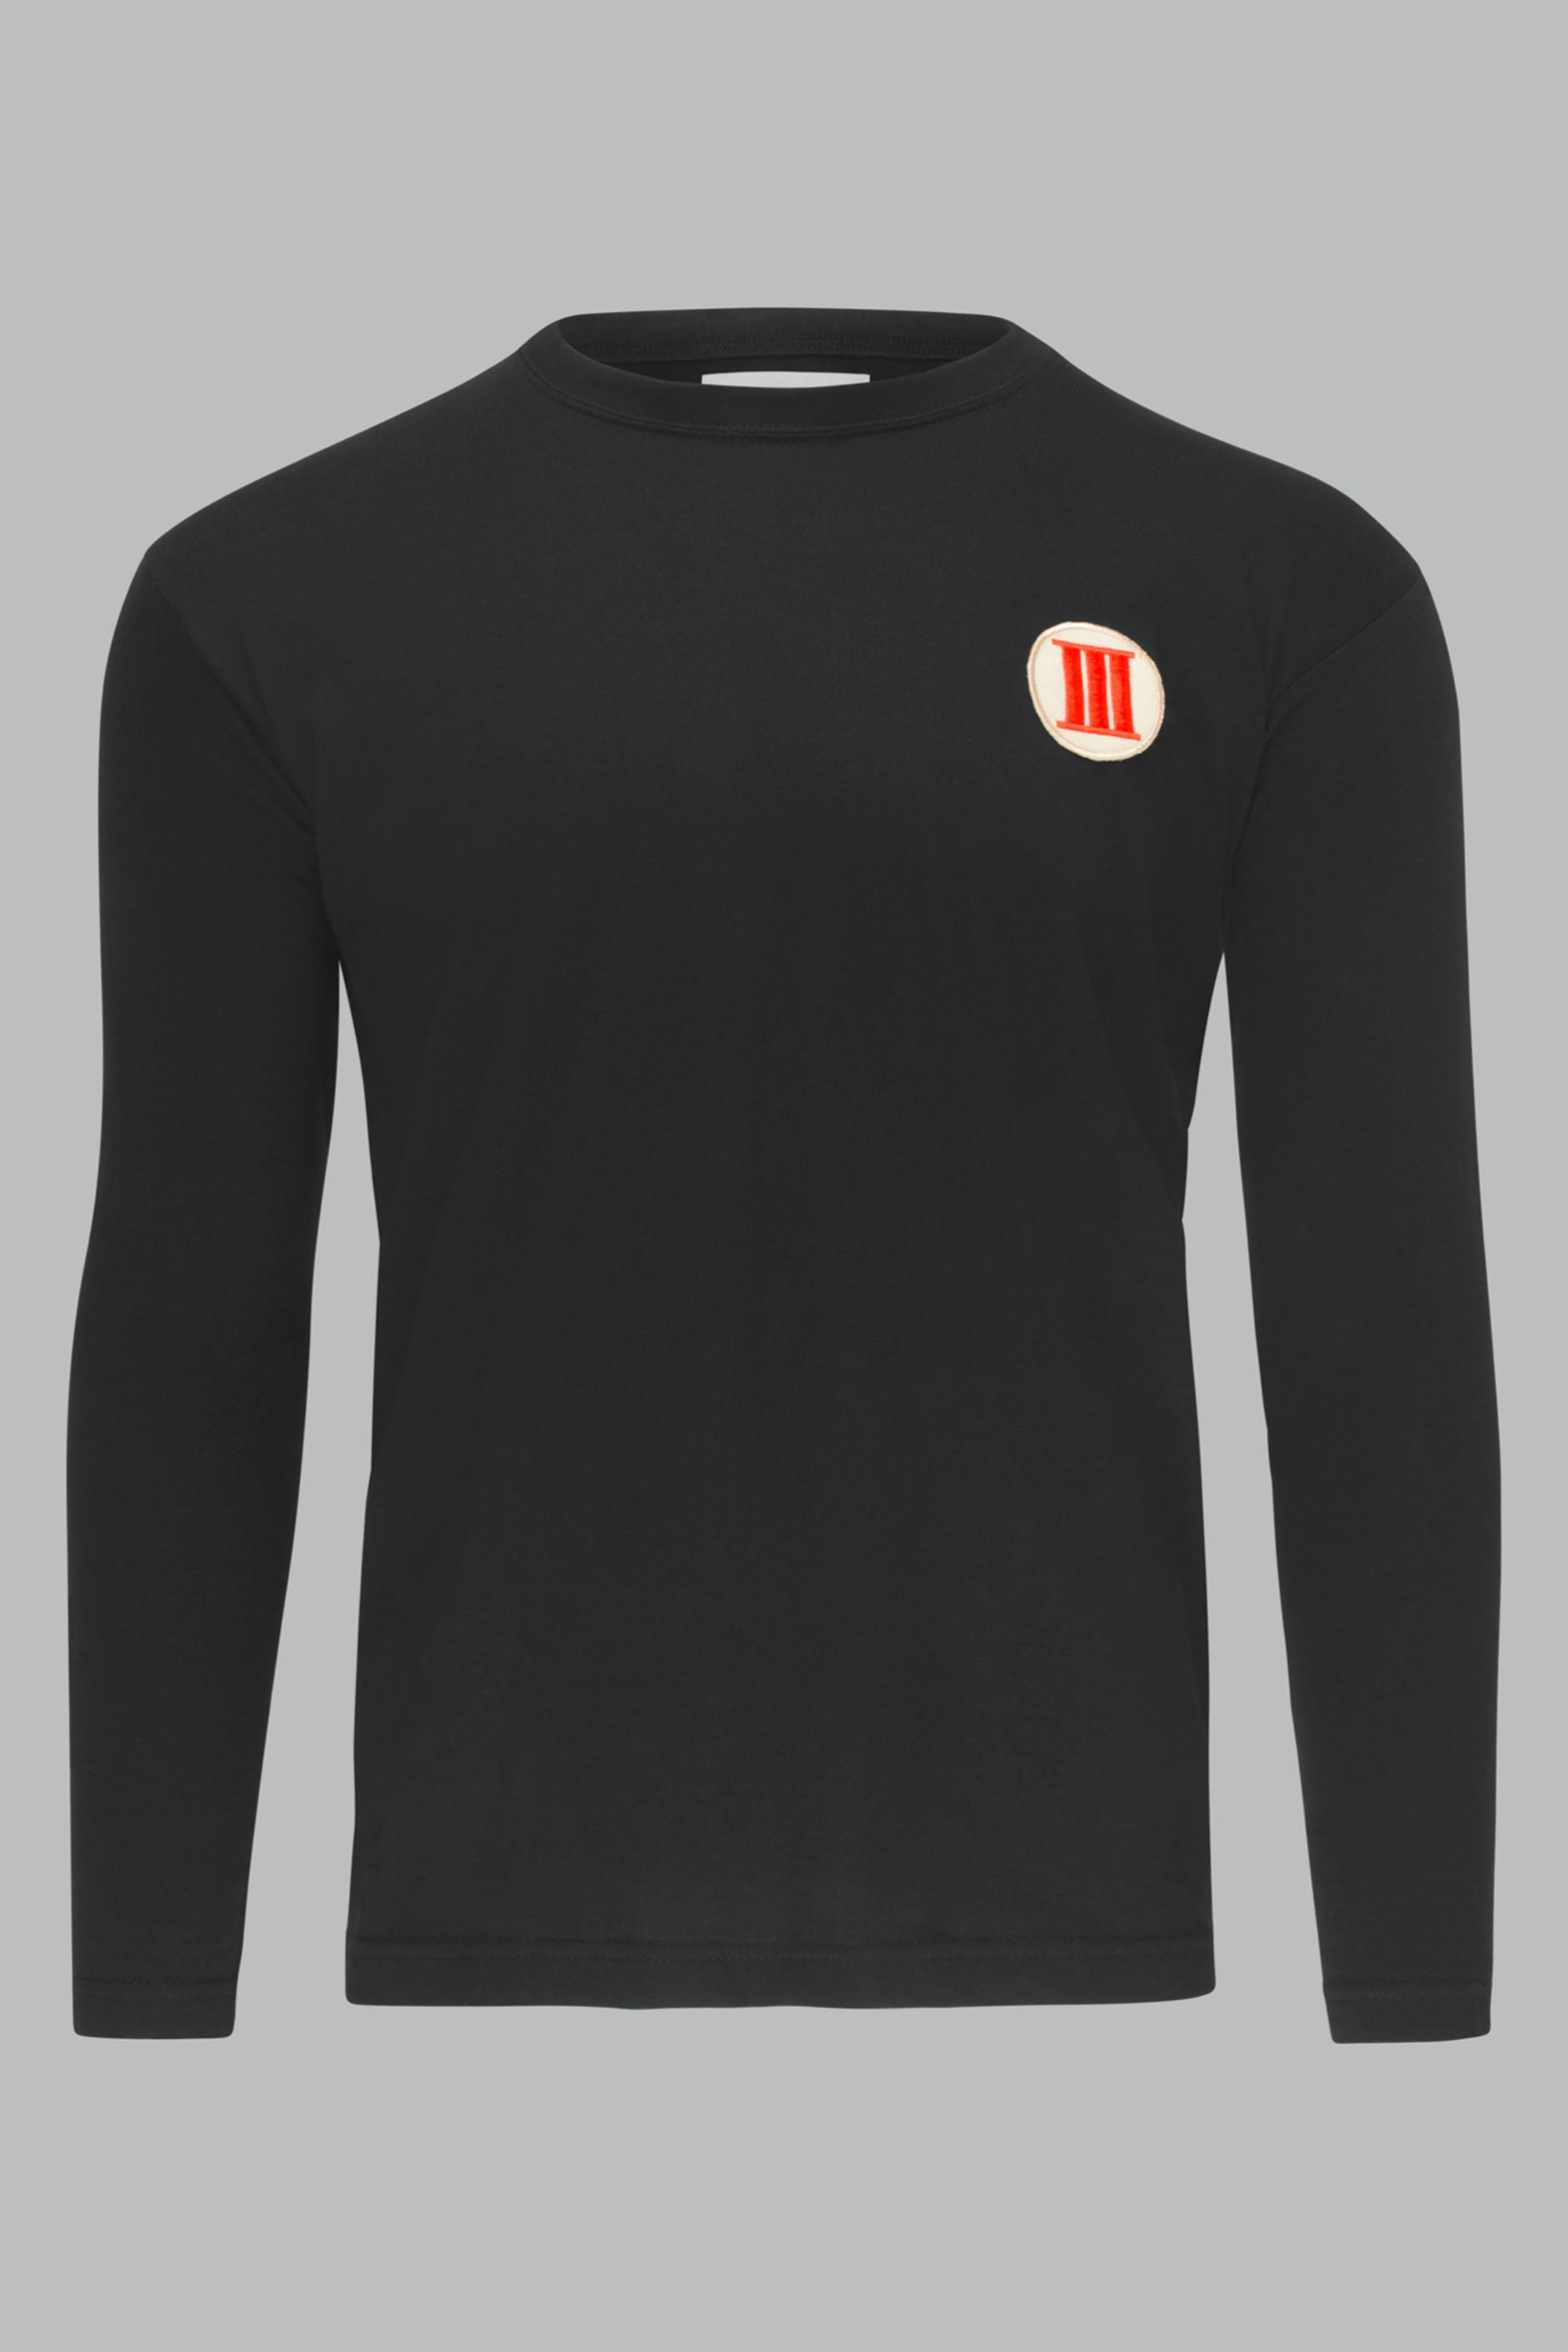 III LONG SLEEVE TEE